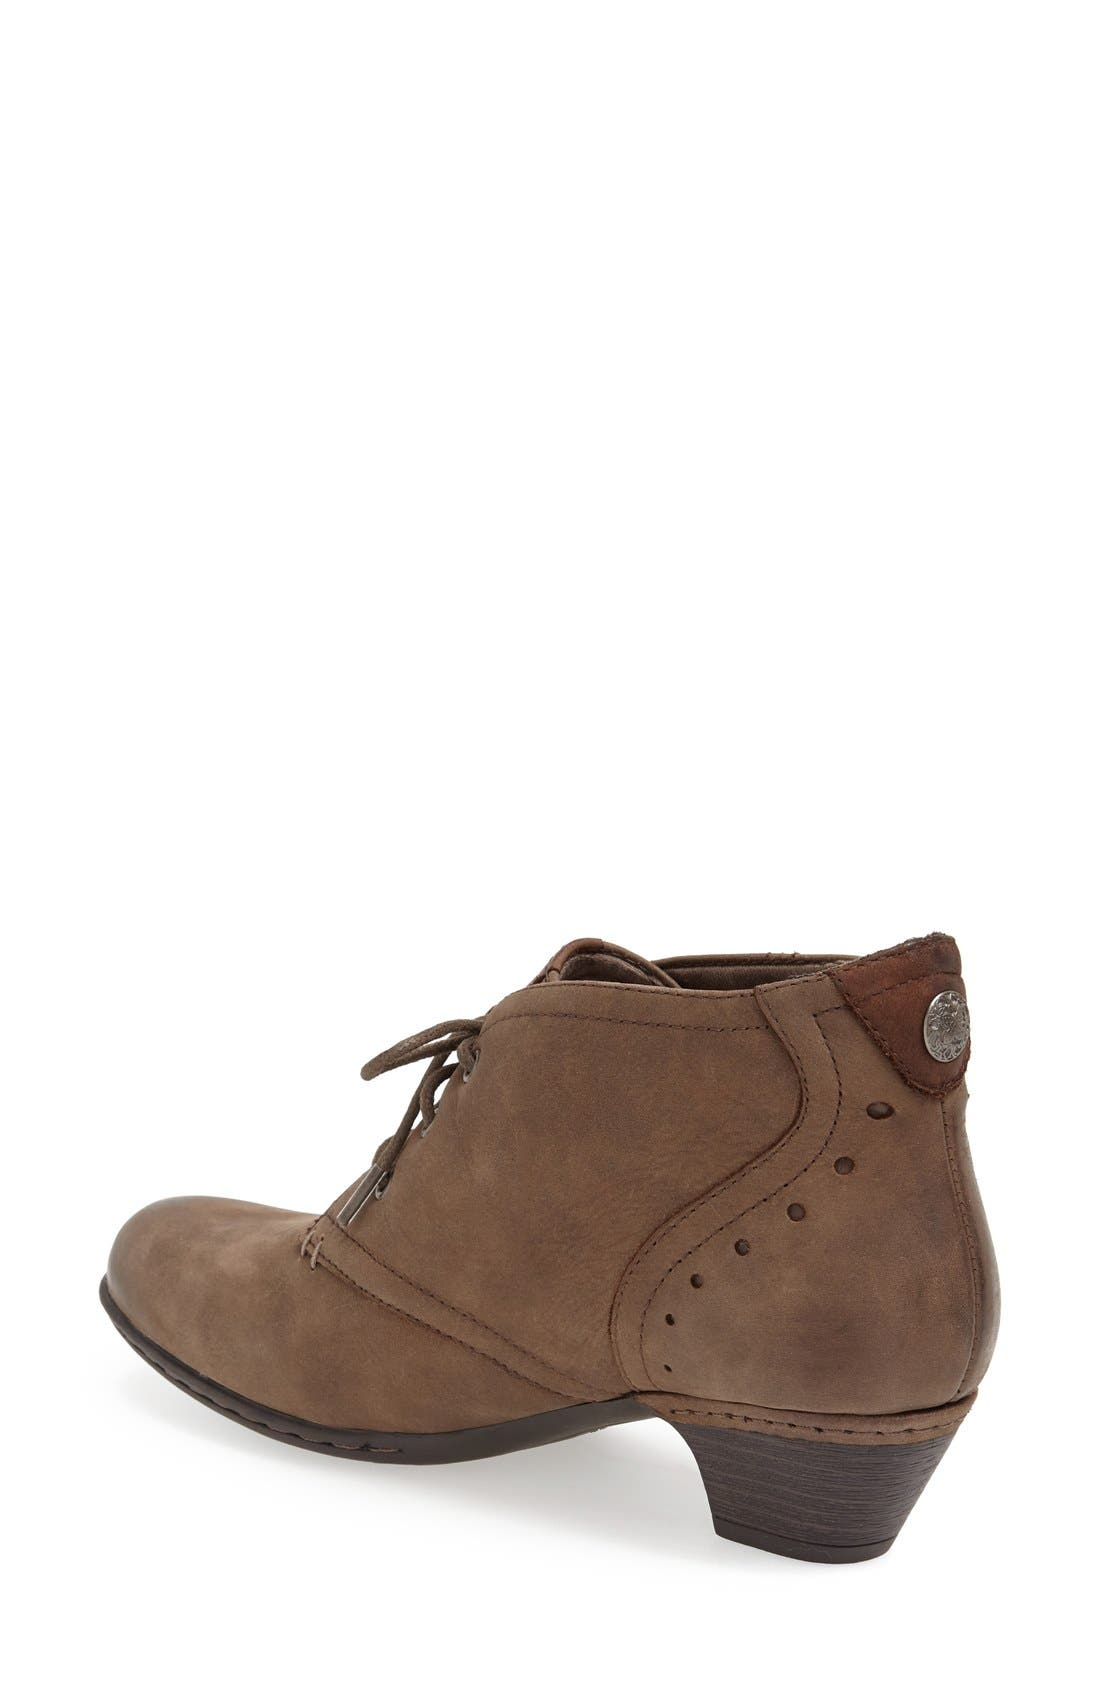 ROCKPORT COBB HILL, Aria Leather Boot, Alternate thumbnail 2, color, STONE